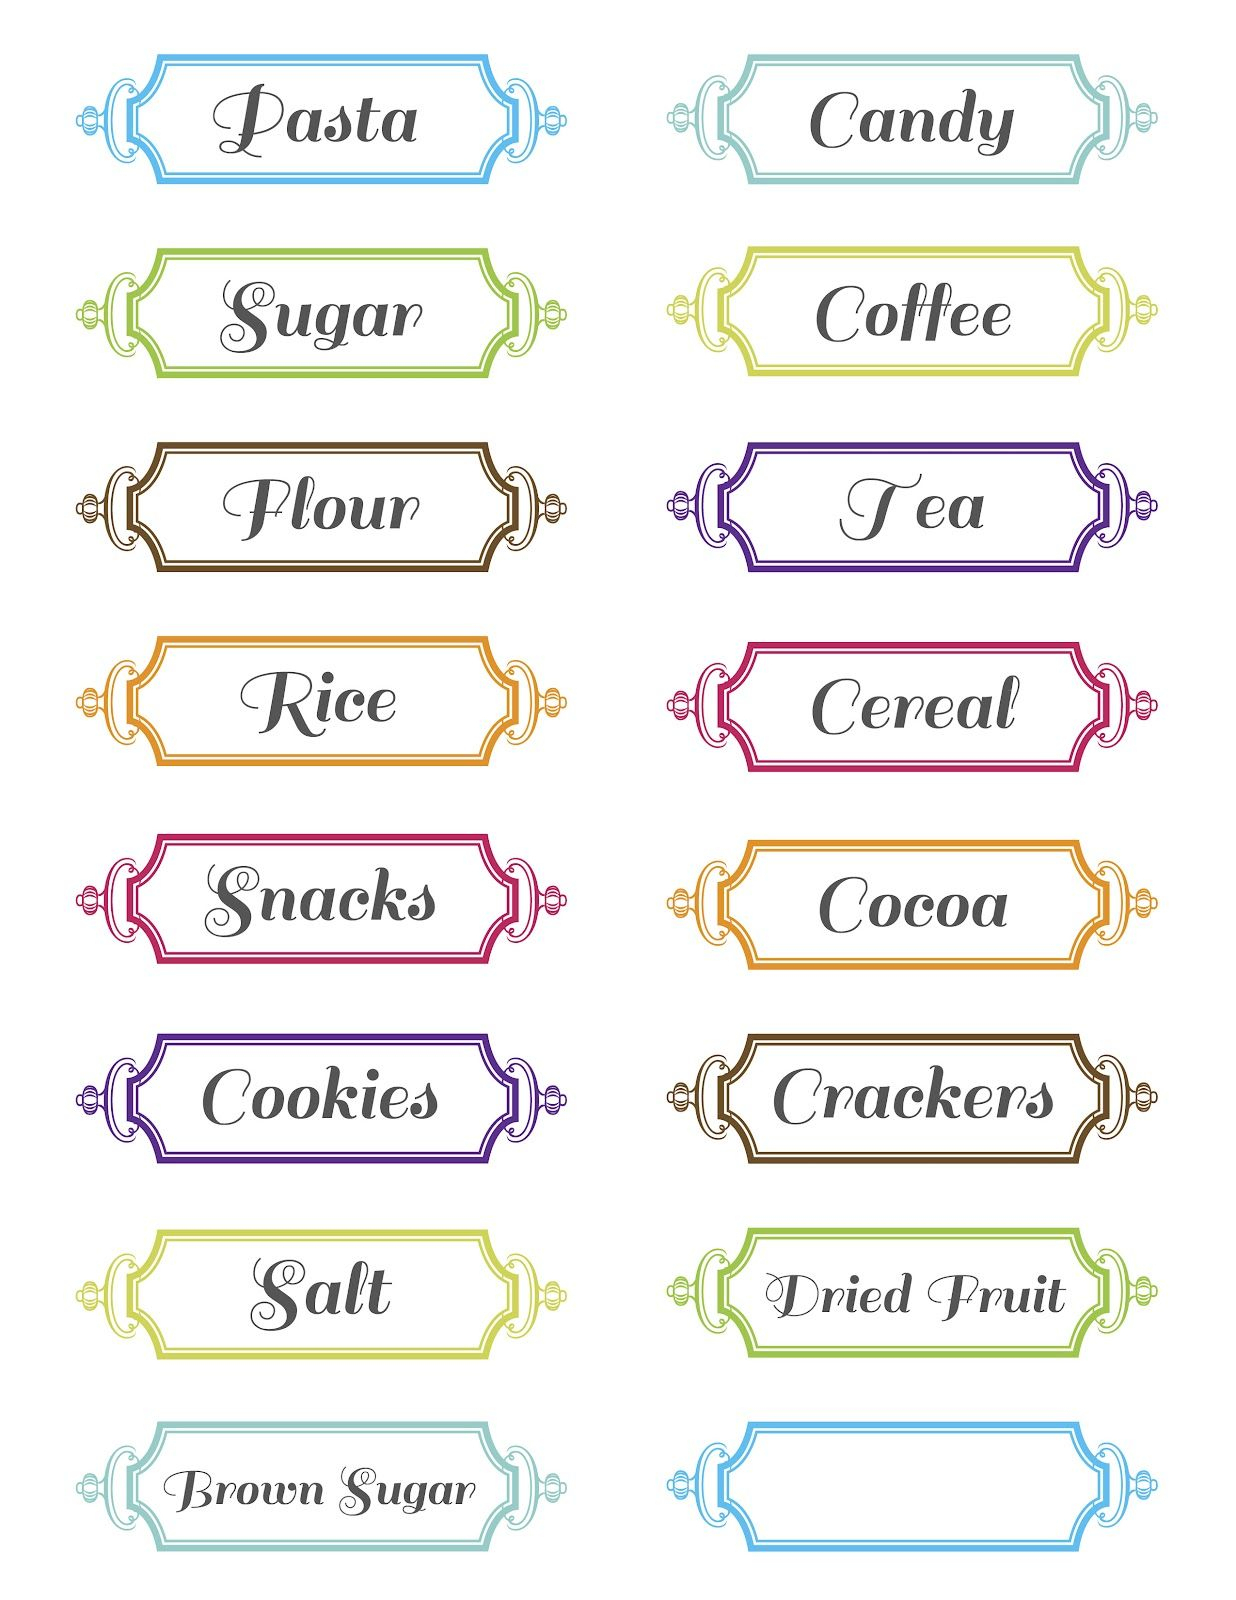 Free Printable Pantry Labels   Covers   Pinterest   Printable Labels - Free Printable Pantry Labels